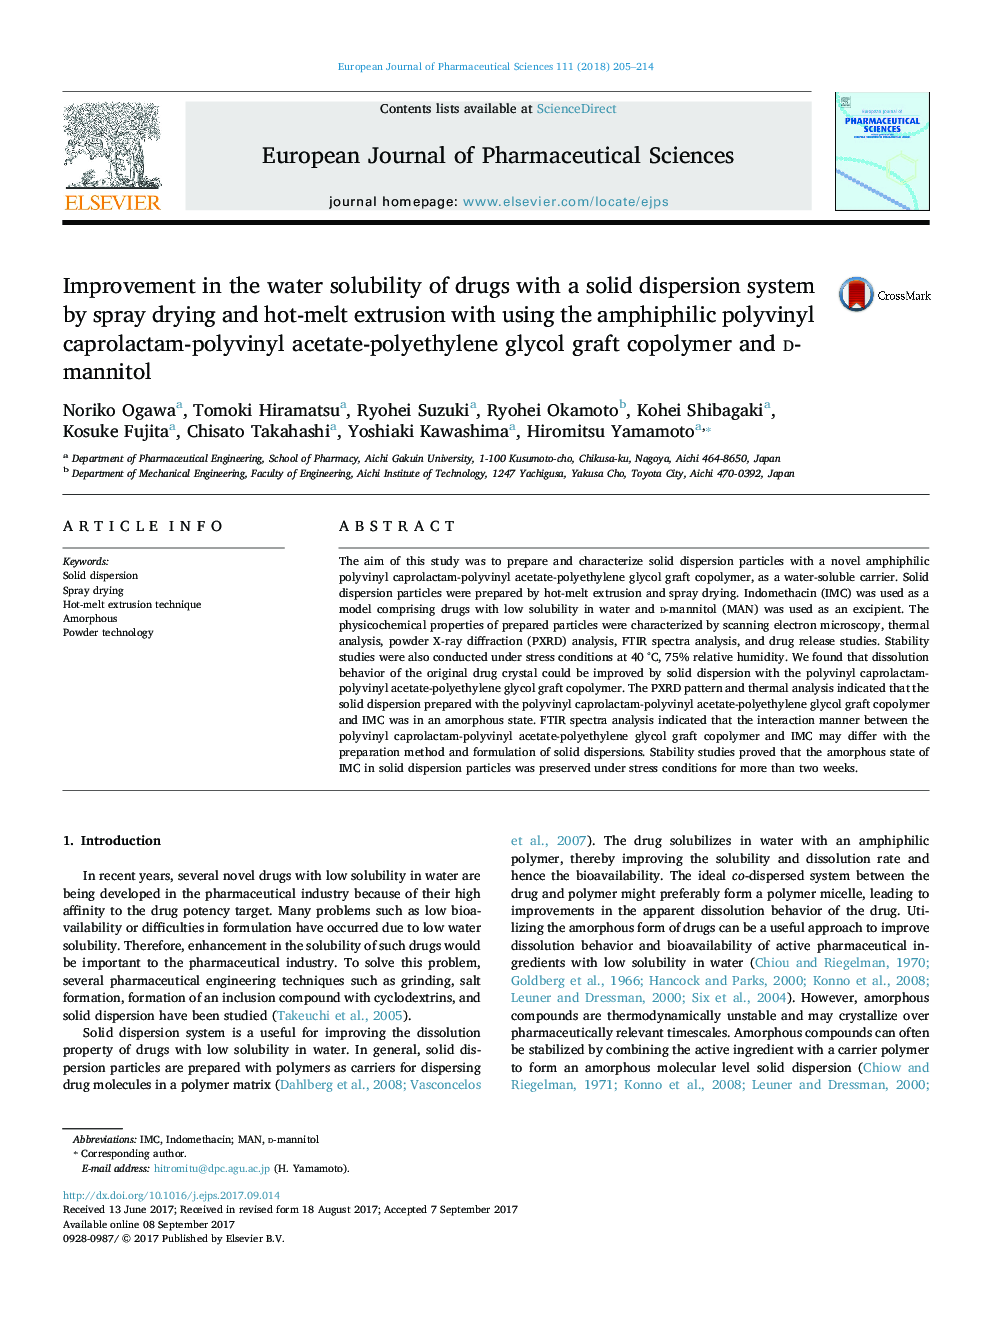 Improvement in the water solubility of drugs with a solid dispersion system by spray drying and hot-melt extrusion with using the amphiphilic polyvinyl caprolactam-polyvinyl acetate-polyethylene glycol graft copolymer and d-mannitol